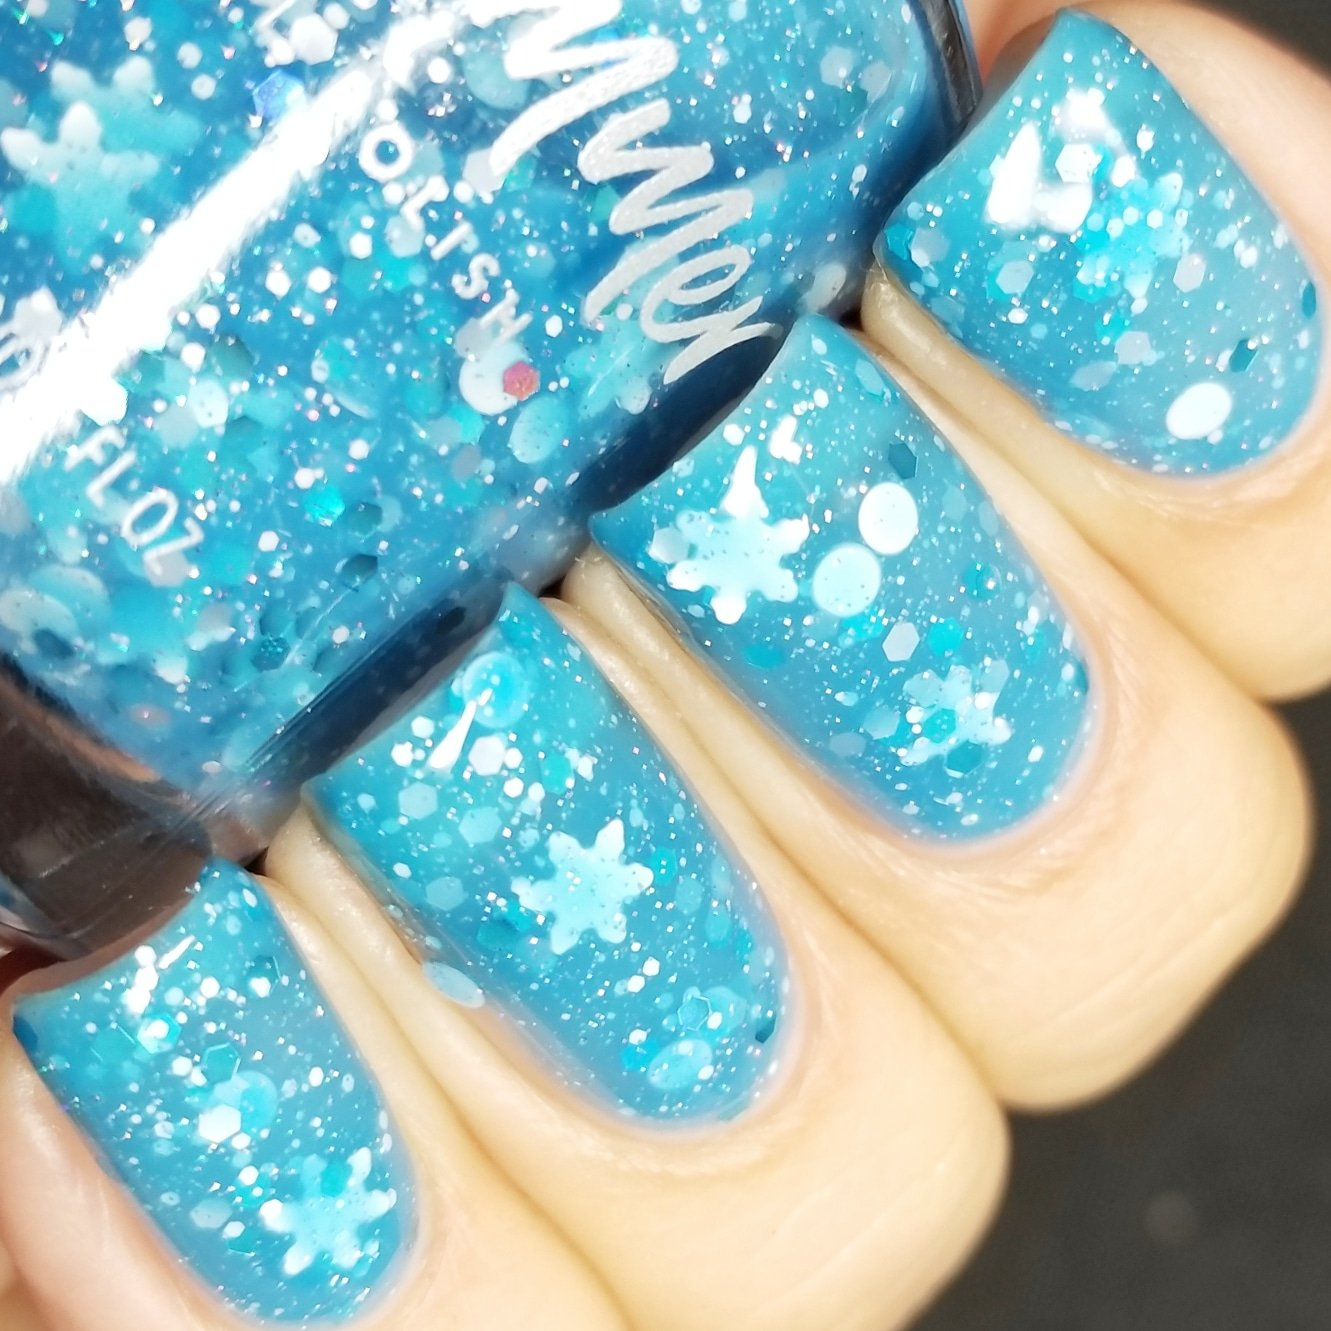 Amazon.com : I Got A Crush On Blue Glitter Nail Polish- 0.5 oz Full ...